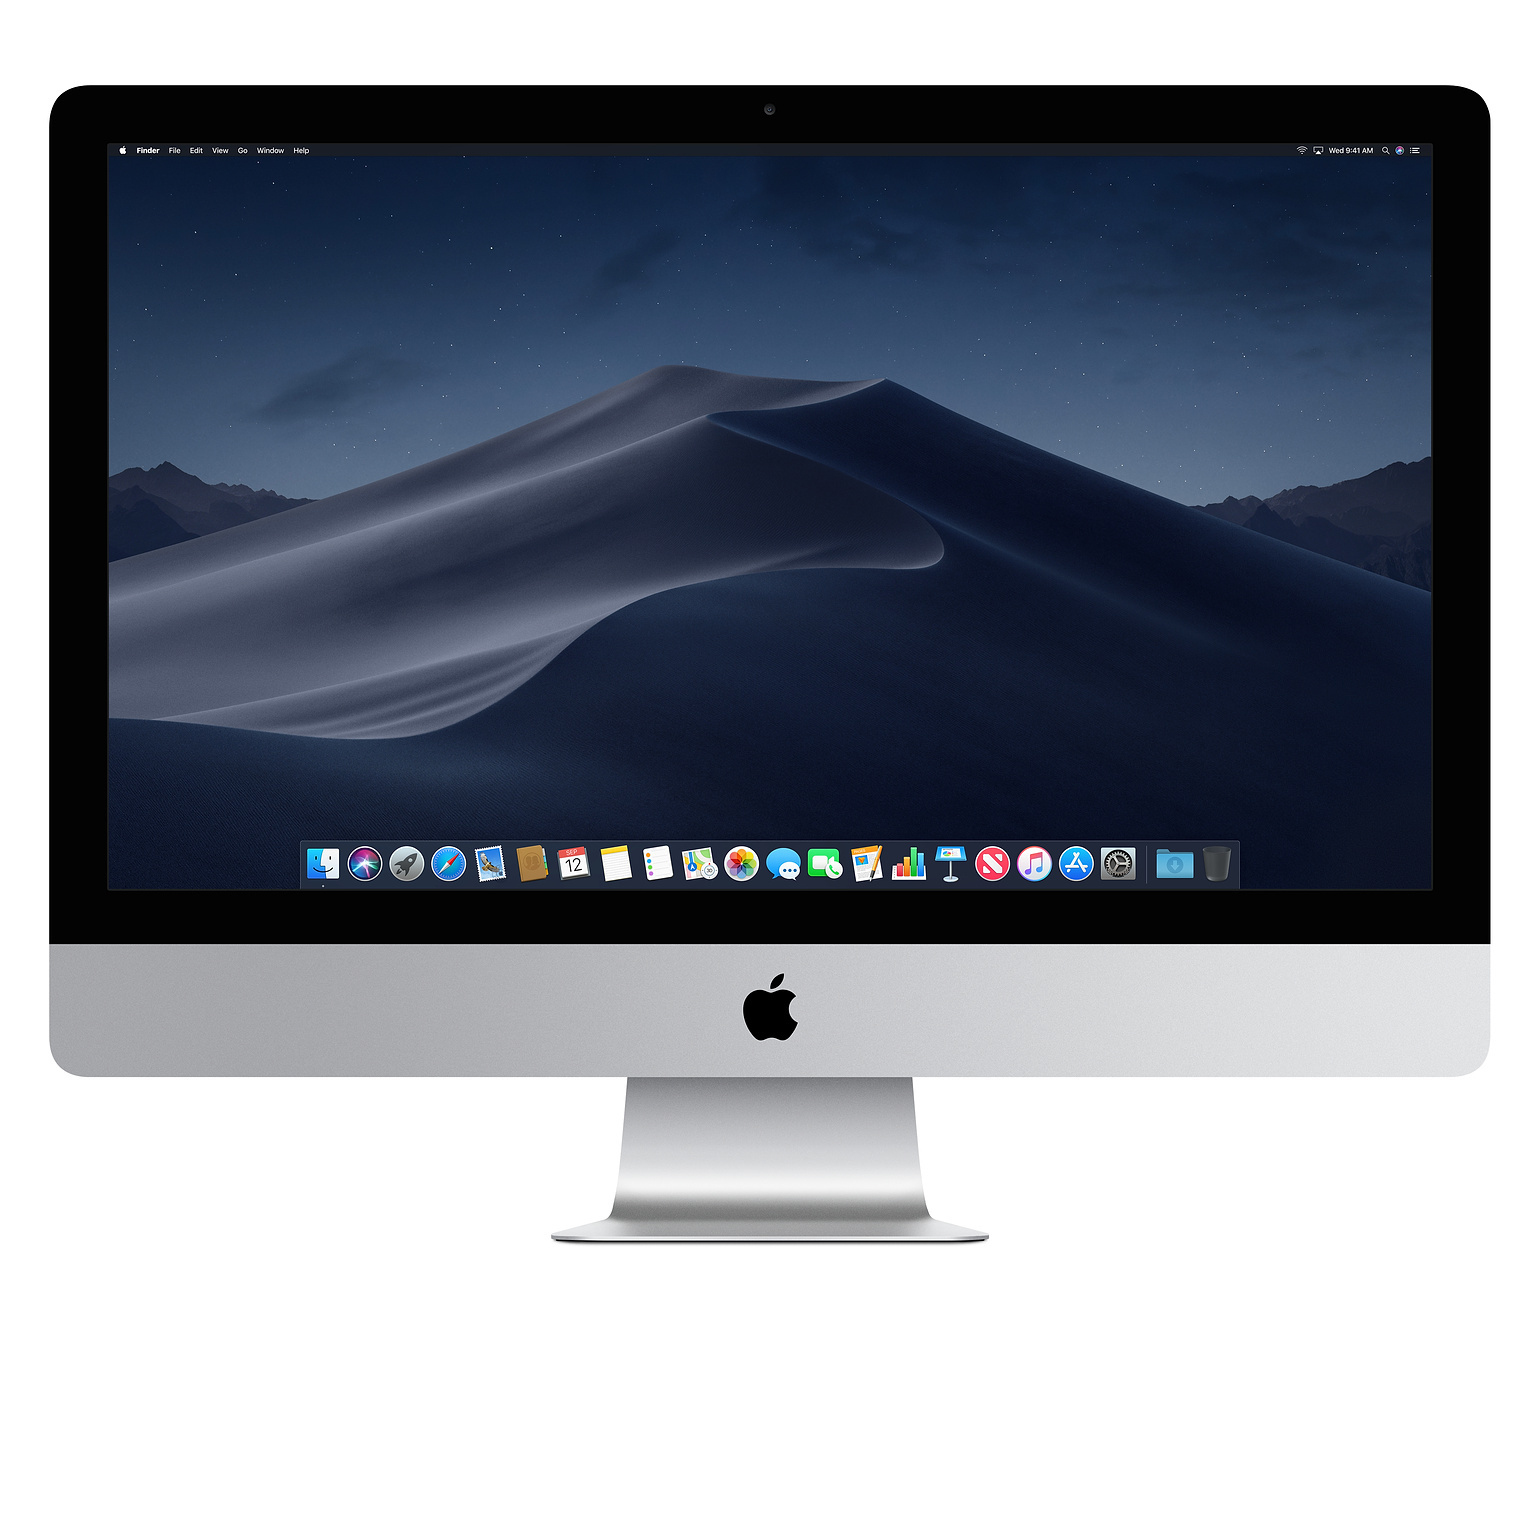 "Apple iMac mit Retina 5K Display - All-in-One (Komplettlösung) - 1 x Core i5 3 GHz - RAM 8 GB - SSD 512 GB - Radeon Pro 570X - GigE - WLAN: 802.11a/b/g/n/ac, Bluetooth 4.2 - Apple macOS Mojave 10.14 - Monitor: LED 68.6 cm (27"") 5120 x 2880 (5K) - CTO"